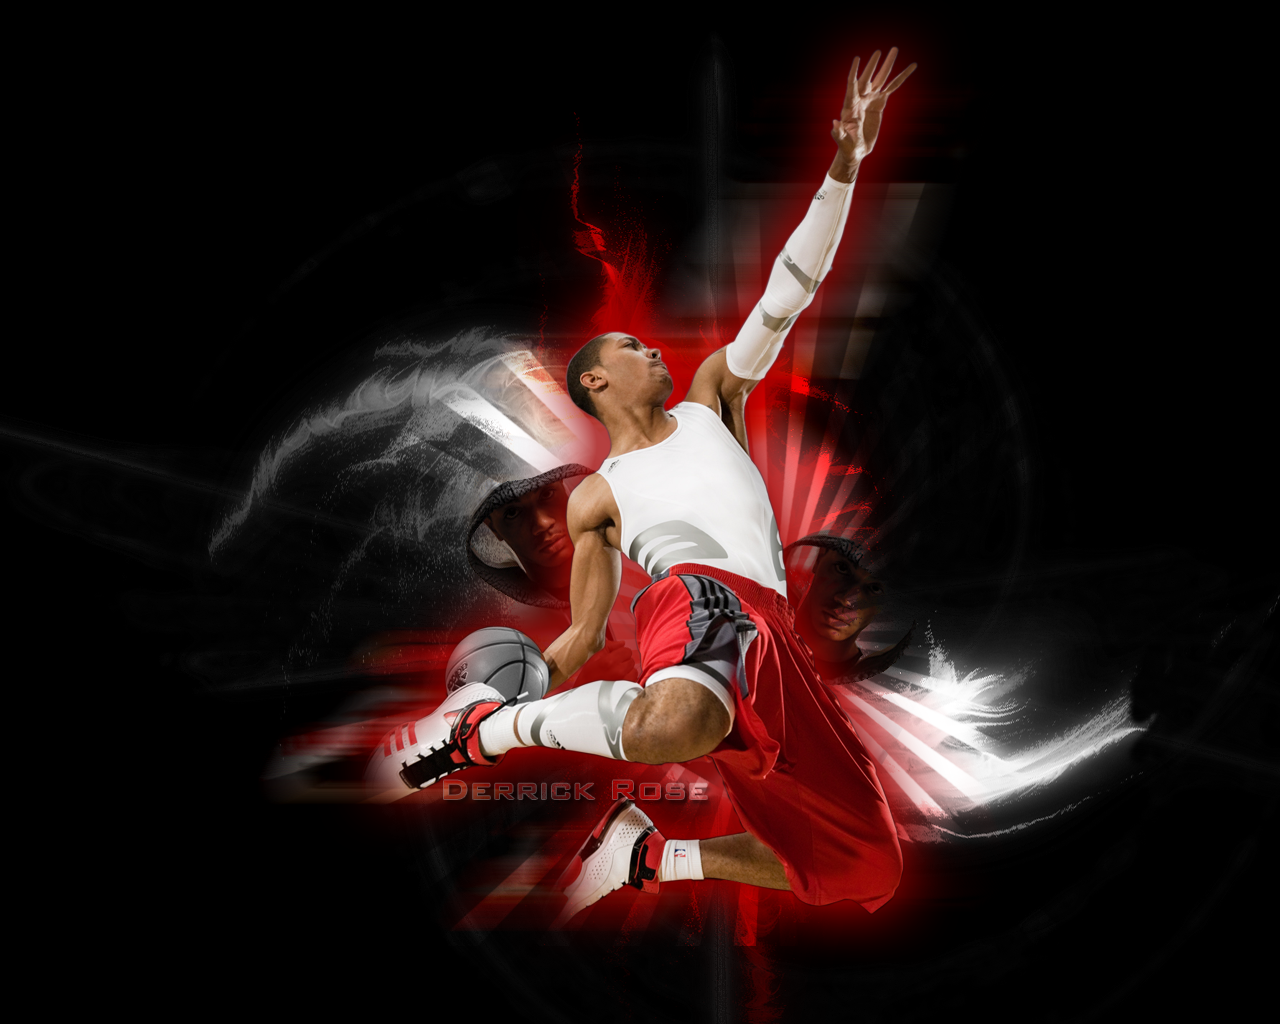 Derrick Rose HD Wallpapers | Latest HD Wallpapers